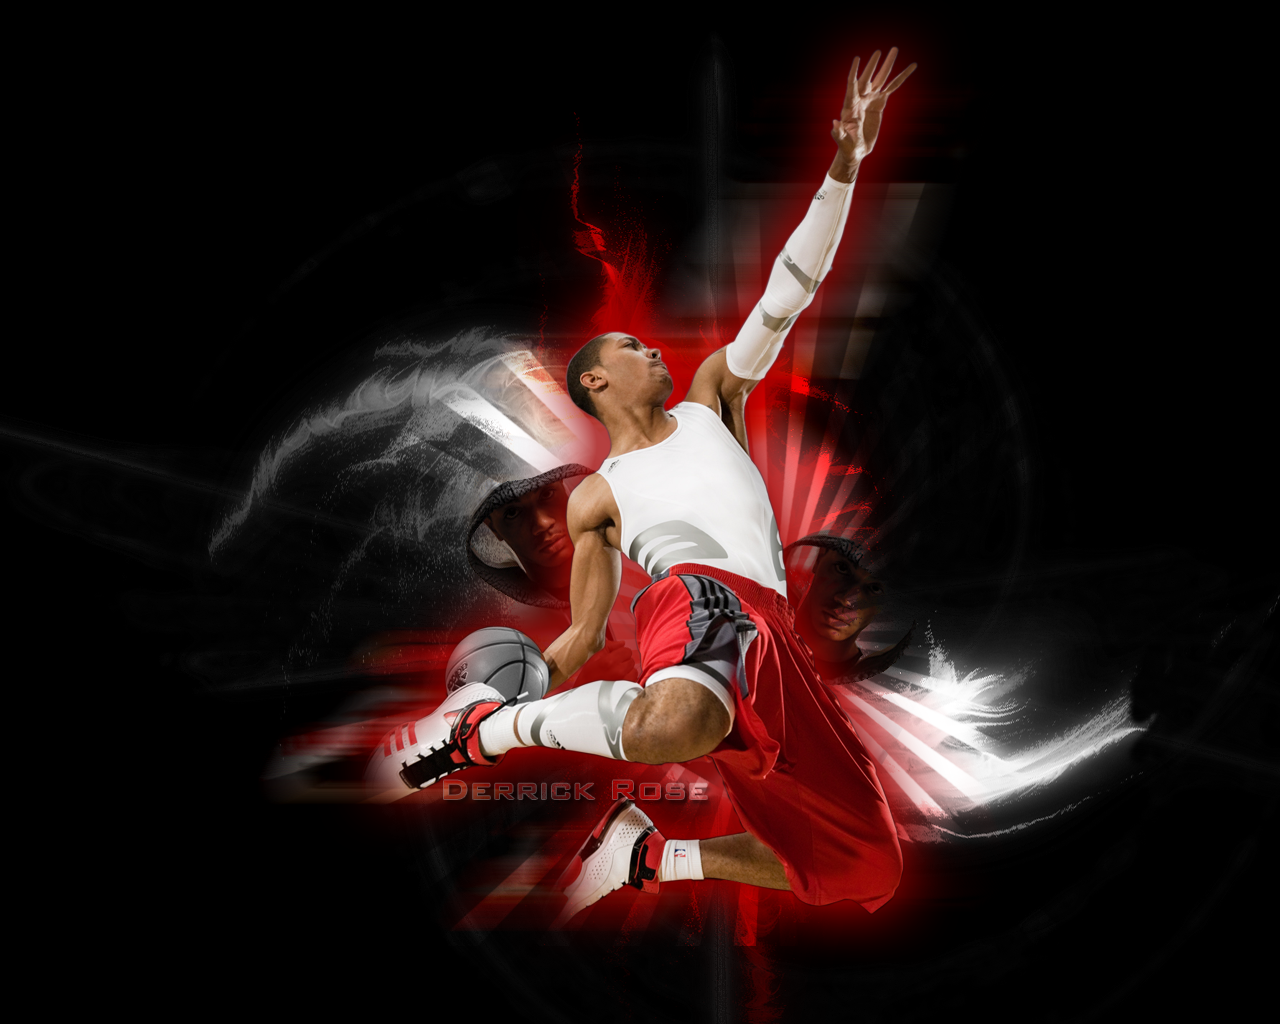 Derrick Rose HD Wallpapers | Latest HD Wallpapers